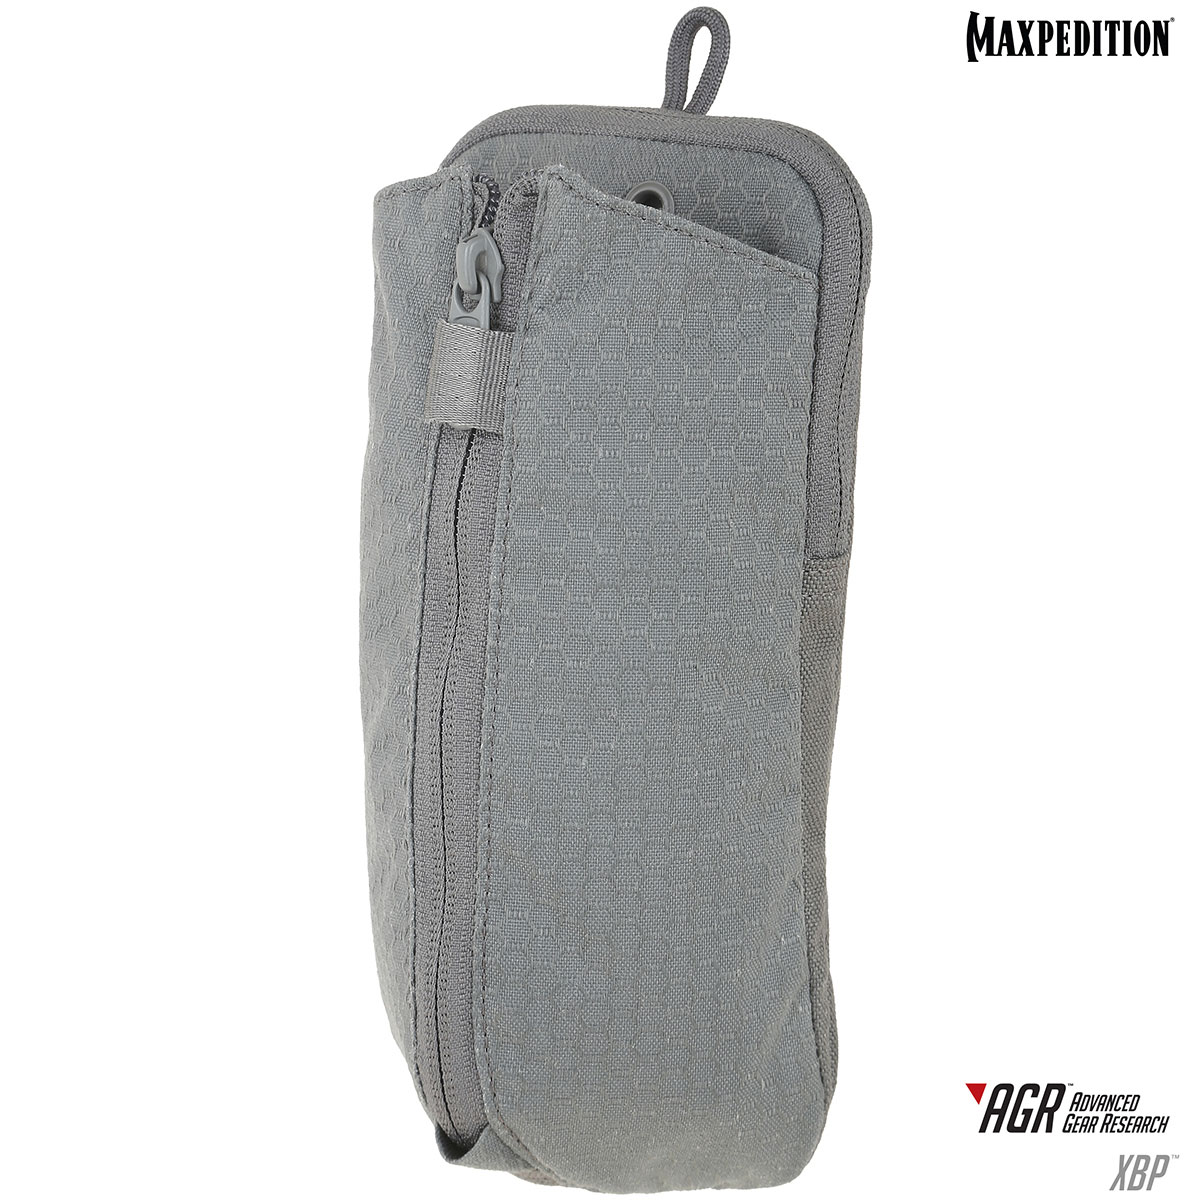 Maxpedition XBPBLK AGR Advanced Gear Research Expandable Bottle Pouch, Gray